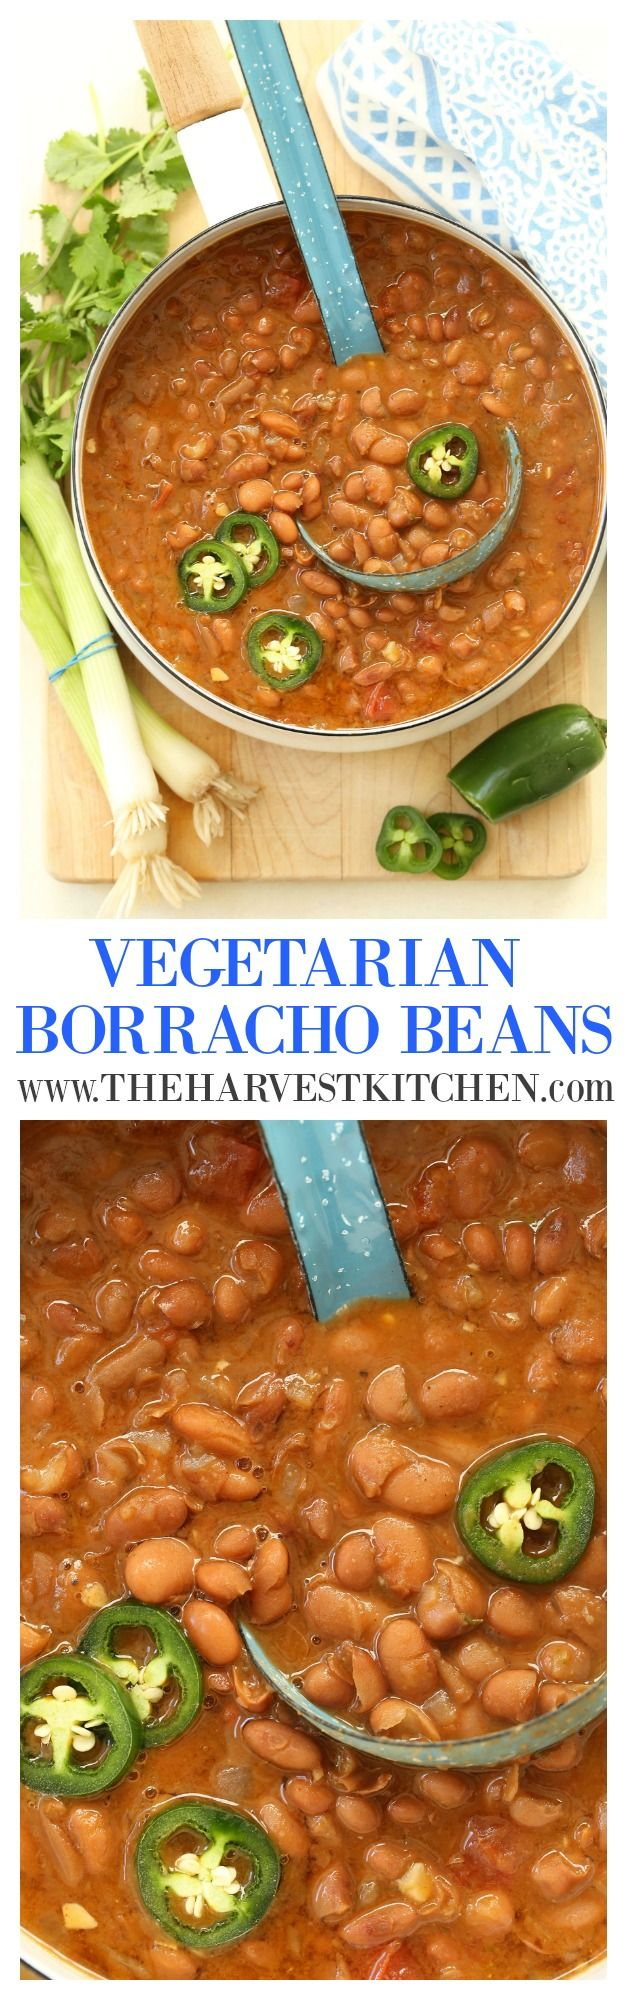 Packed with protein, these Vegetarian Borracho Beans are chock full of flavor, have a wee bit of a kick to them, and they make a perfect side dish for any Mexican meal you may be planning. Or serve with brown rice for a simple healthy high-protein vegetarian meal. Either way, you're going to want to make these beans!!